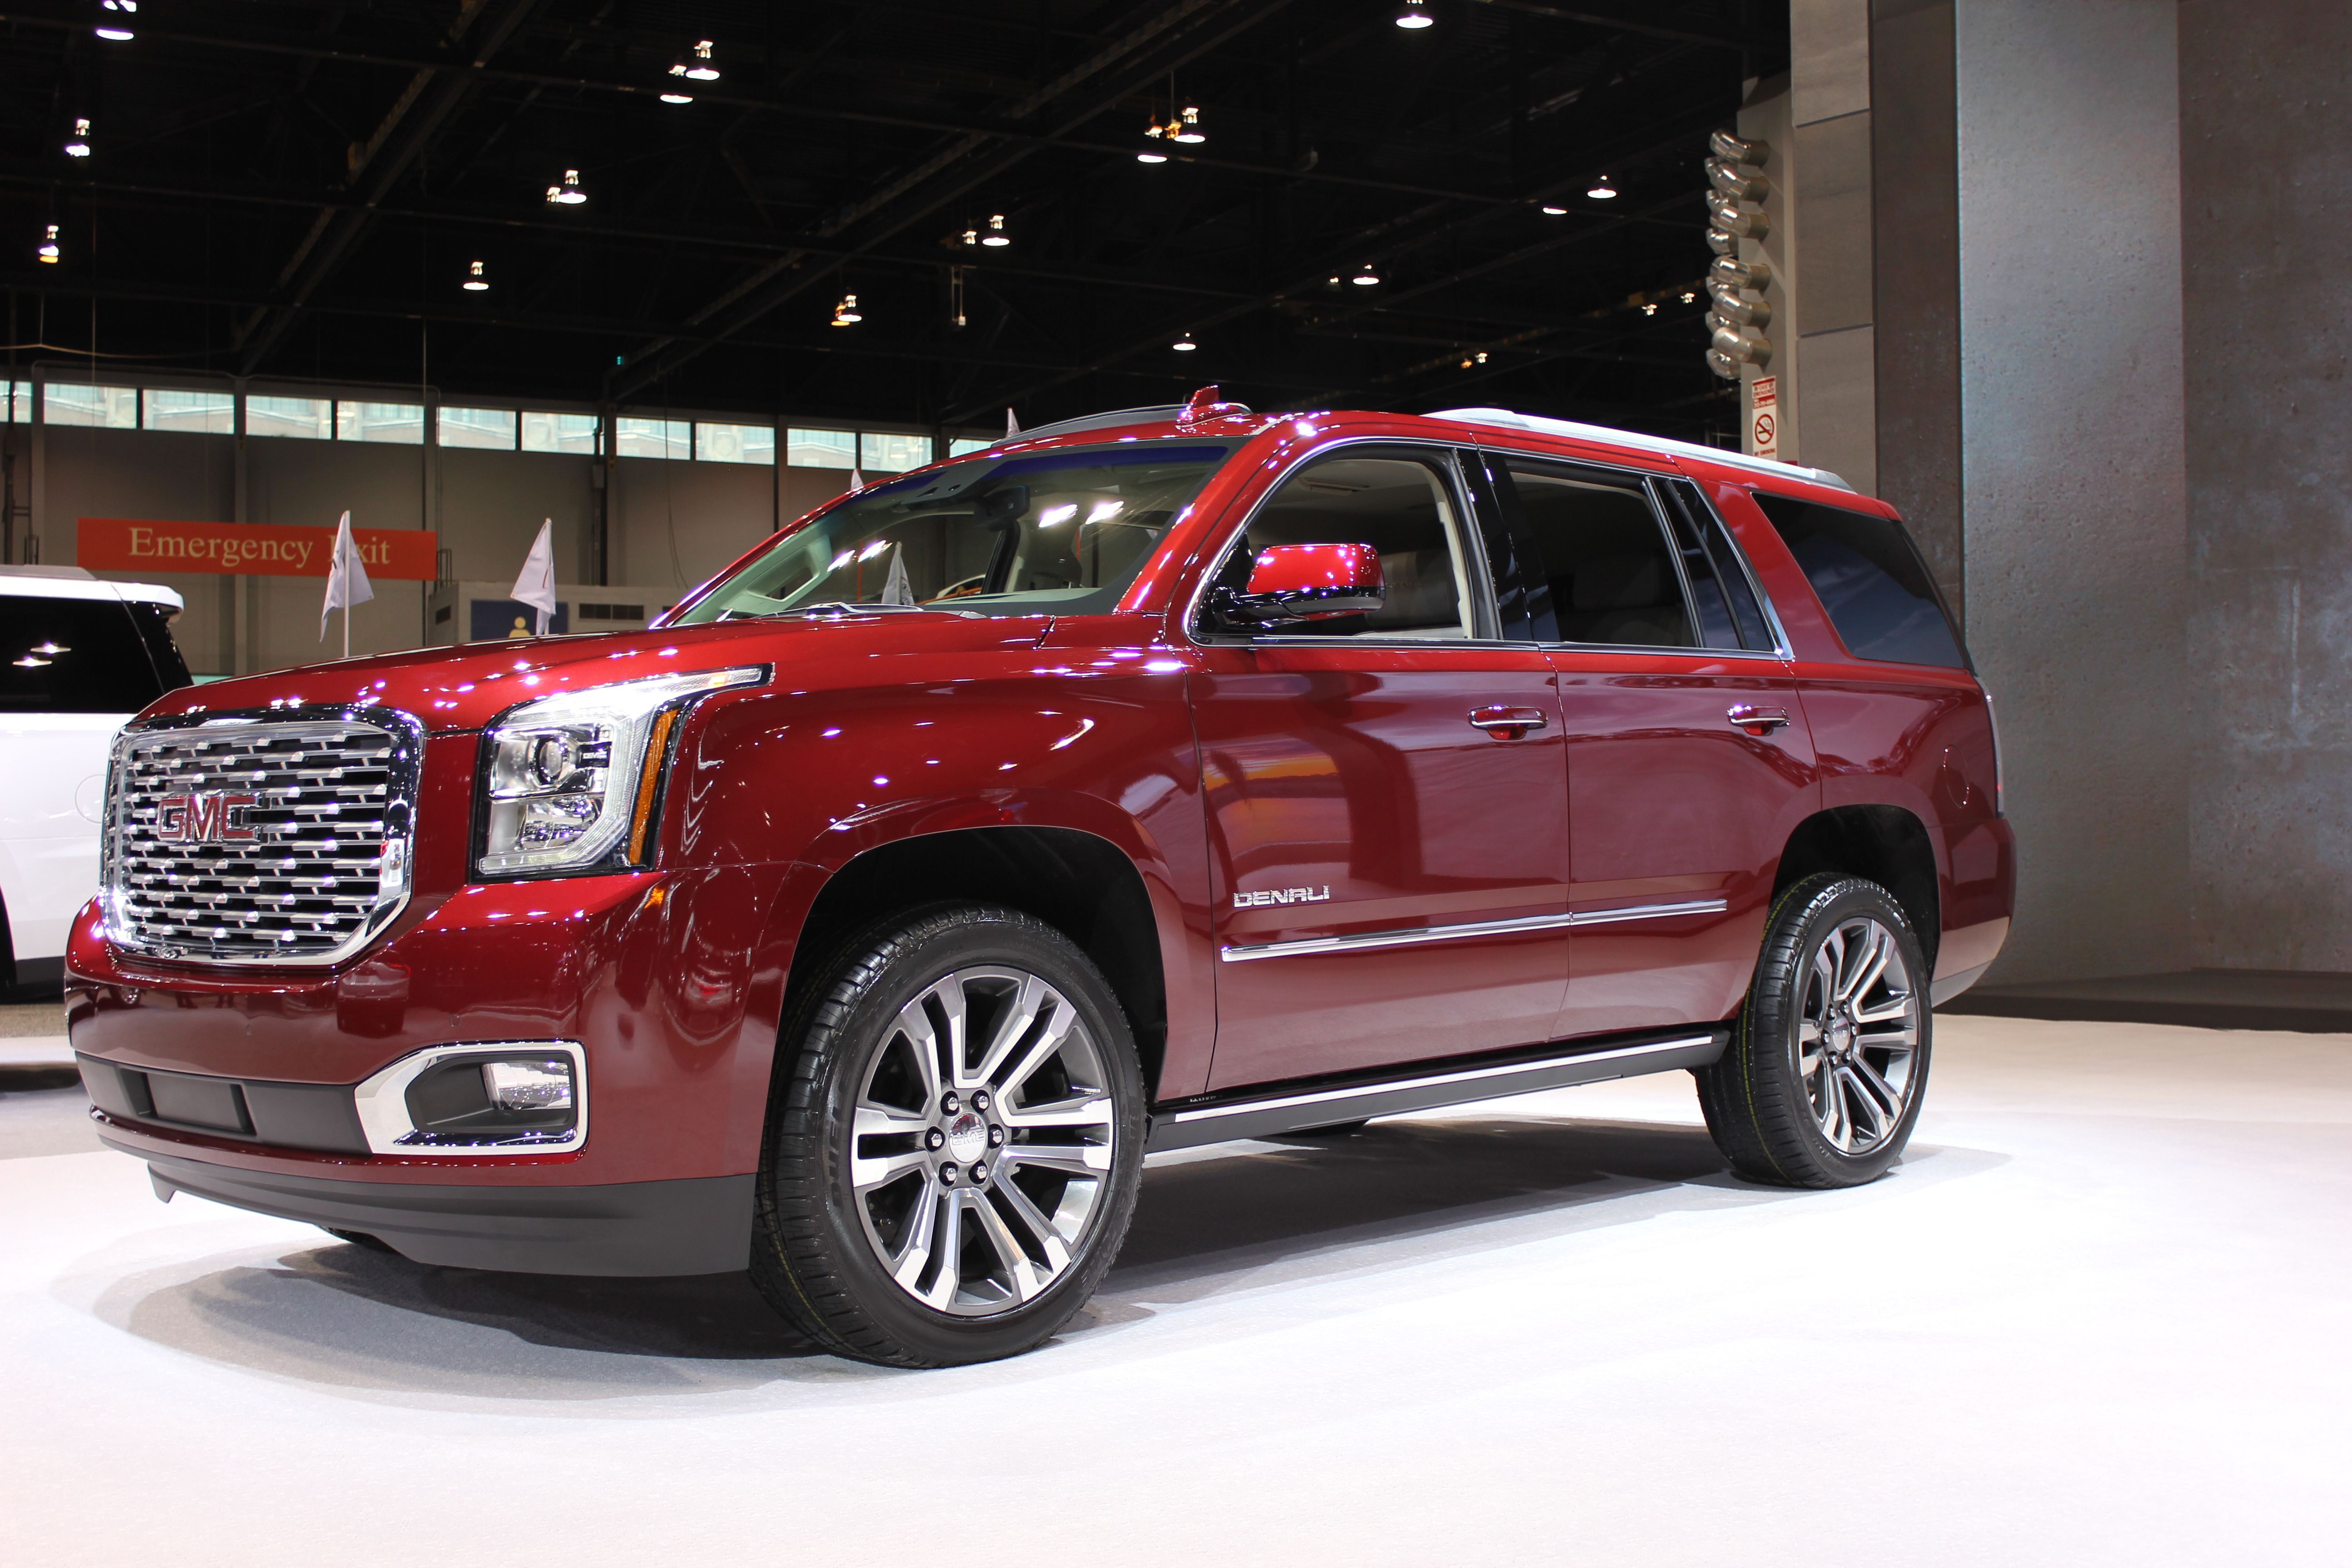 Check Out This Photo From The Chicago Auto Show There Are Lots Of Great Buick And Gmc Models On Display Cas18